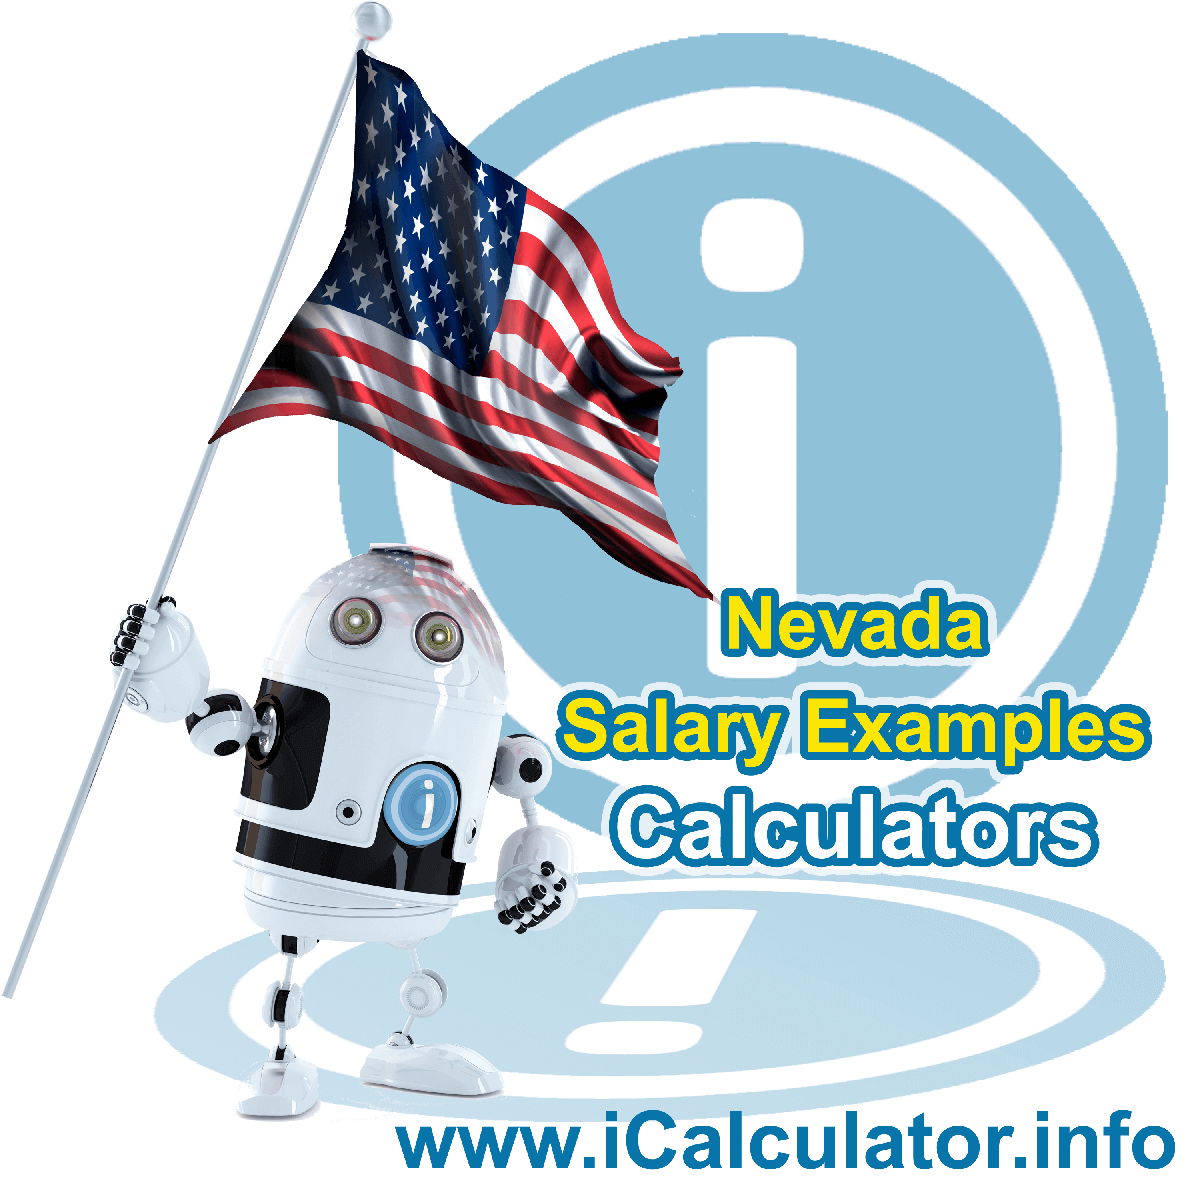 Nevada Salary Example for $70,000.00 in 2020 | iCalculator | $70,000.00 salary example for employee and employer paying Nevada State tincome taxes. Detailed salary after tax calculation including Nevada State Tax, Federal State Tax, Medicare Deductions, Social Security, Capital Gains and other income tax and salary deductions complete with supporting Nevada state tax tables